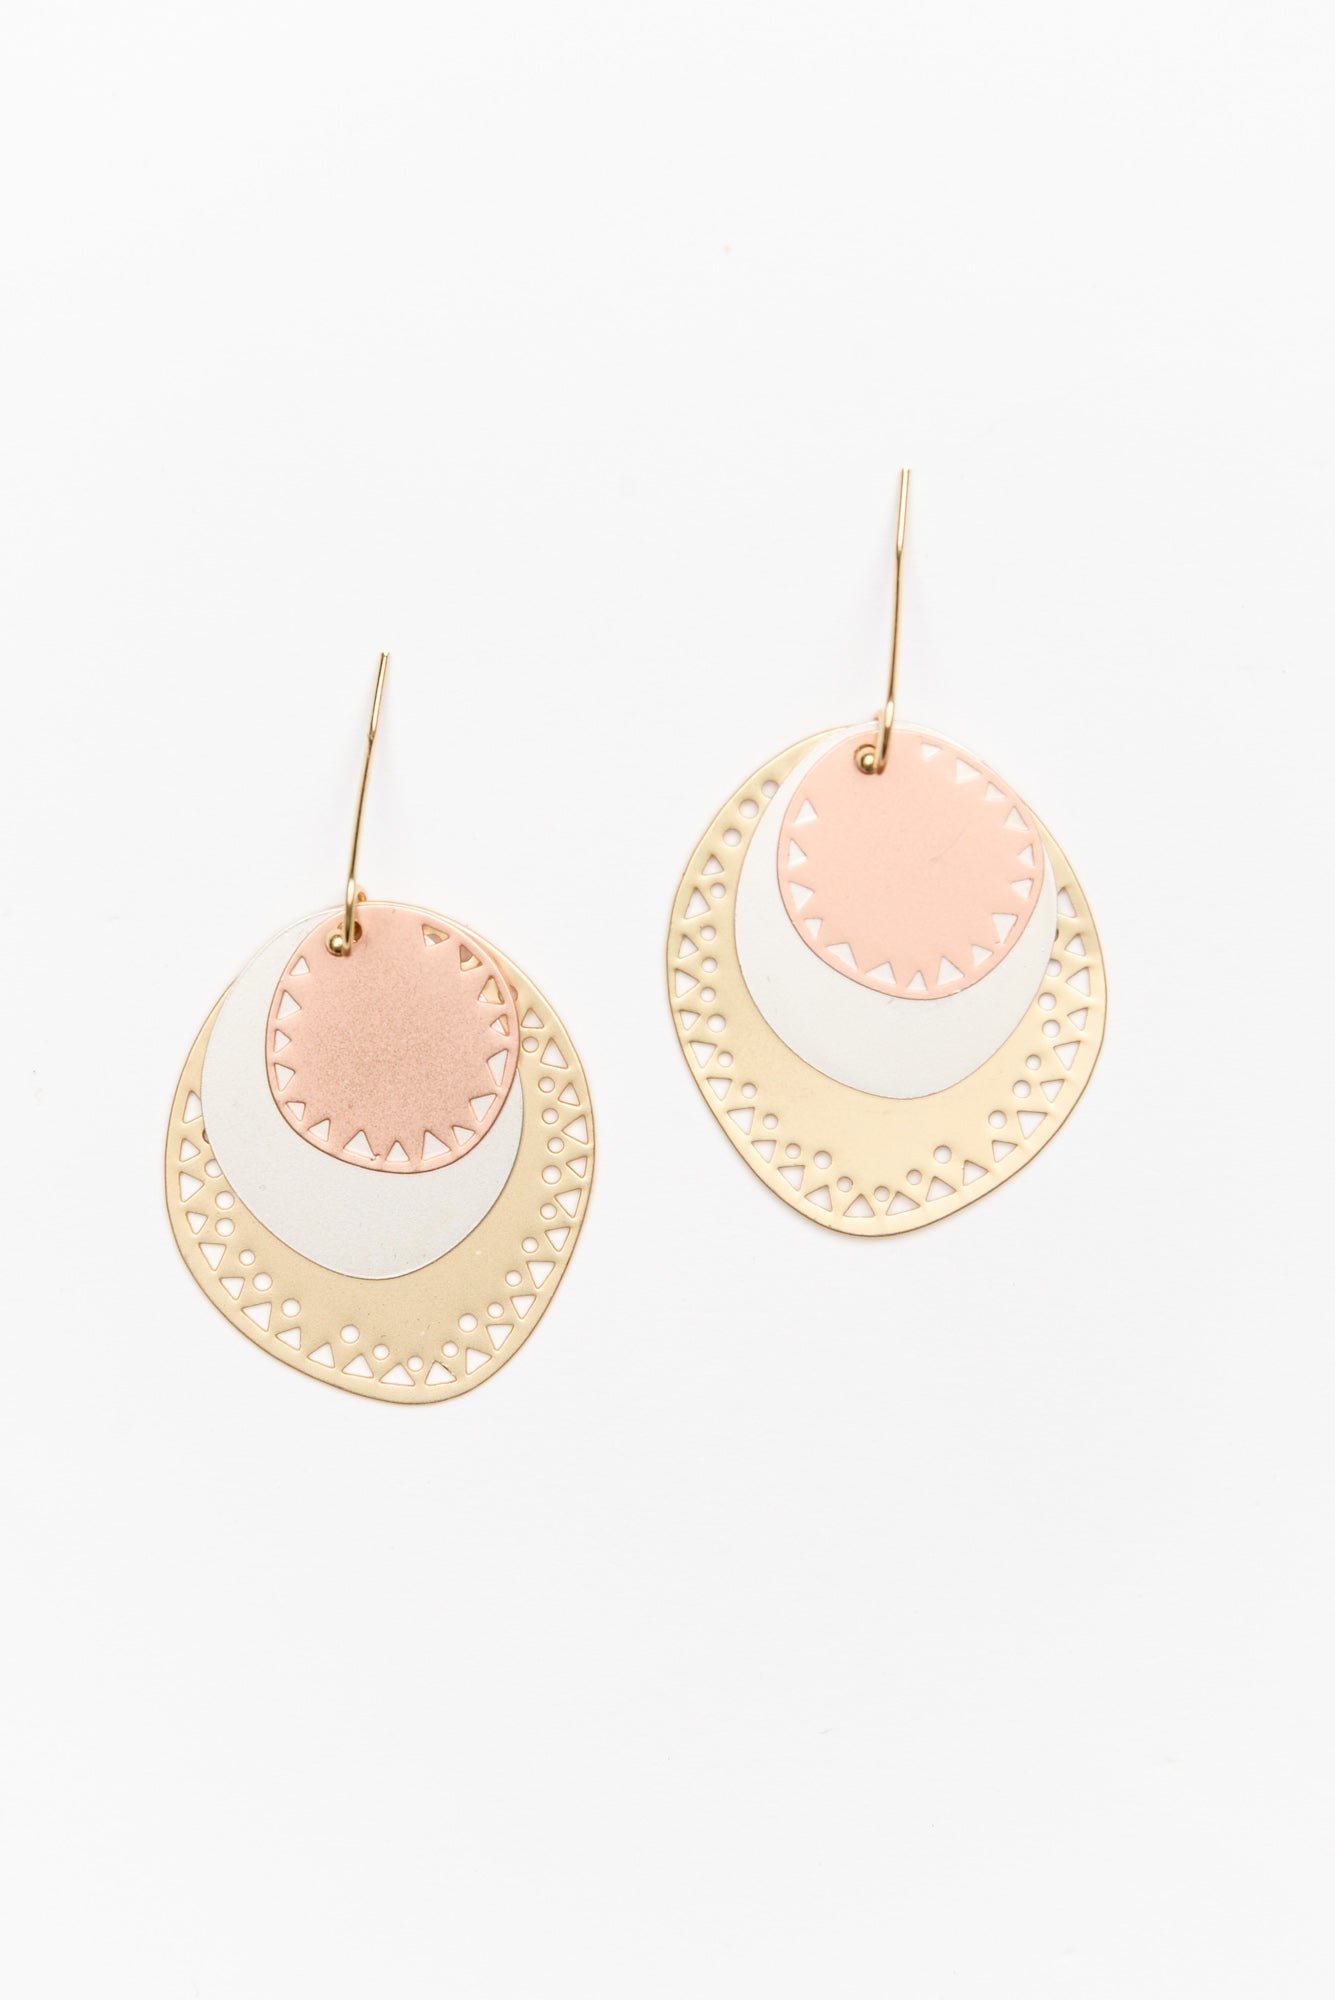 Aubrie Triple Treat Mix Earring